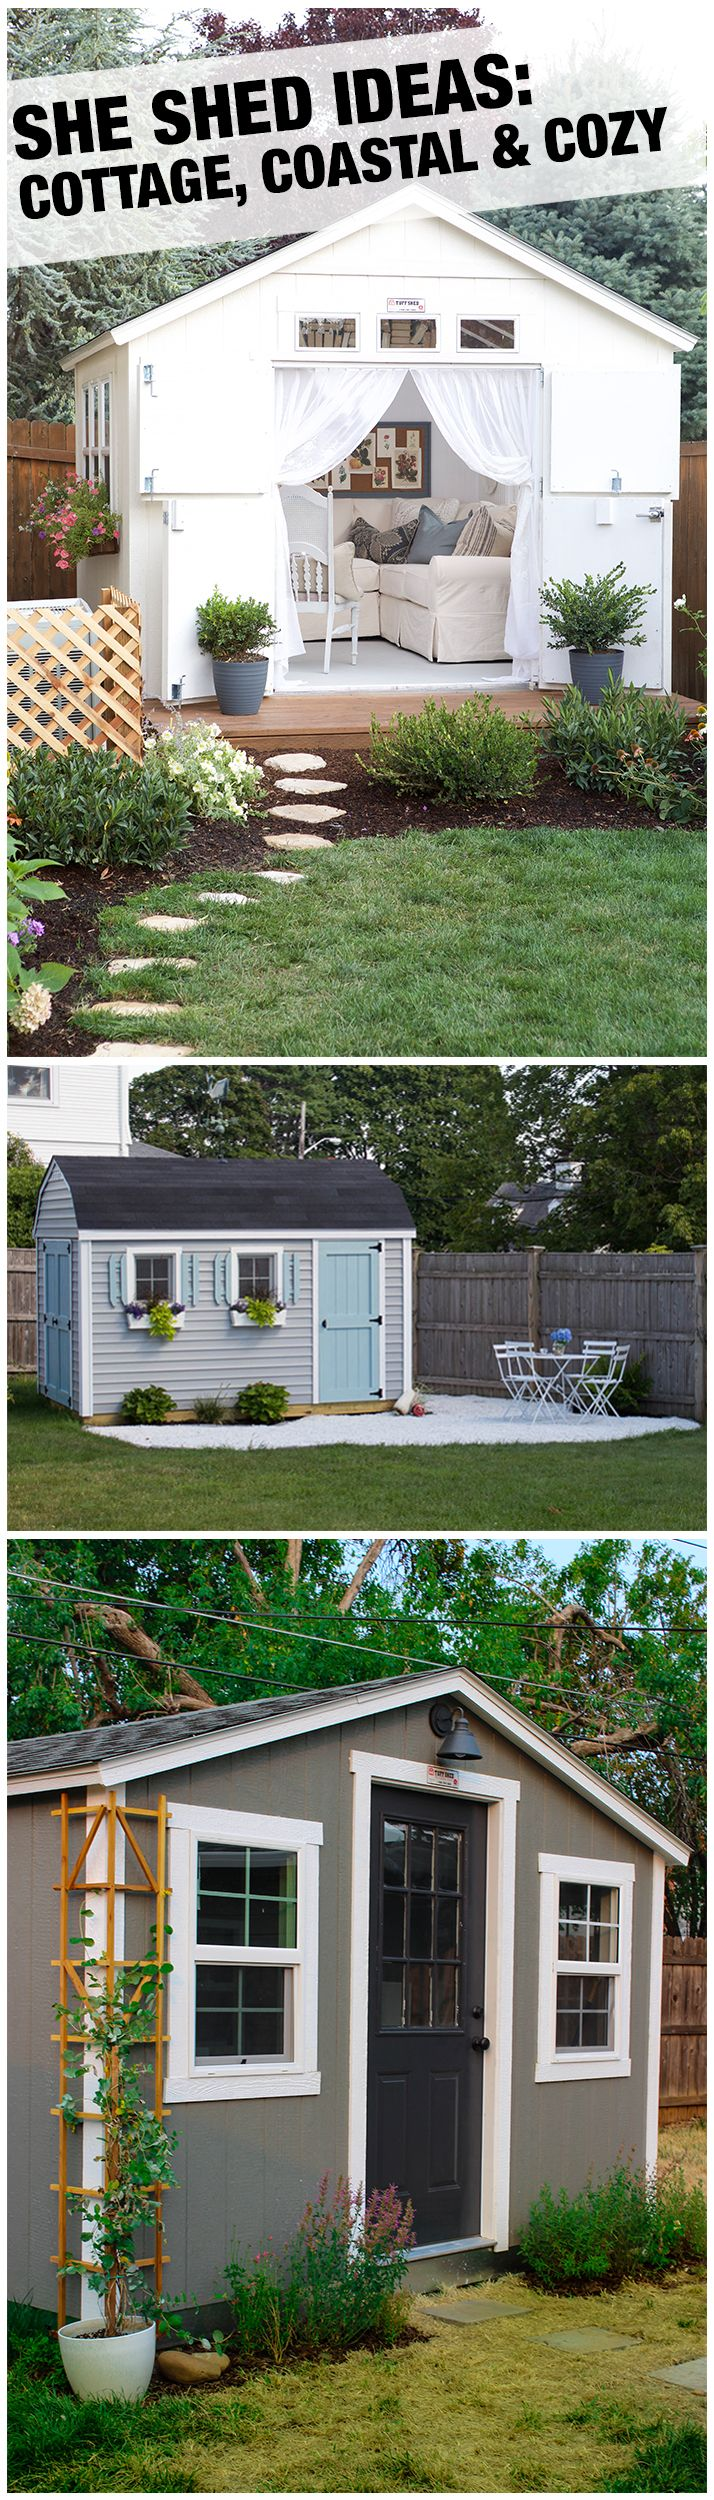 She Sheds are one of the best backyard trends ever! All it takes is a storage shed and some clever decorating ideas to create your own backyard retreat. Let The Home Depot install it for you, and you're one step closer to relaxing in your one-of-a-kind backyard getaway. Take a look at these design ideas to spark your She Shed creativity. Get everything you need to start your She Shed project with help from The Home Depot.